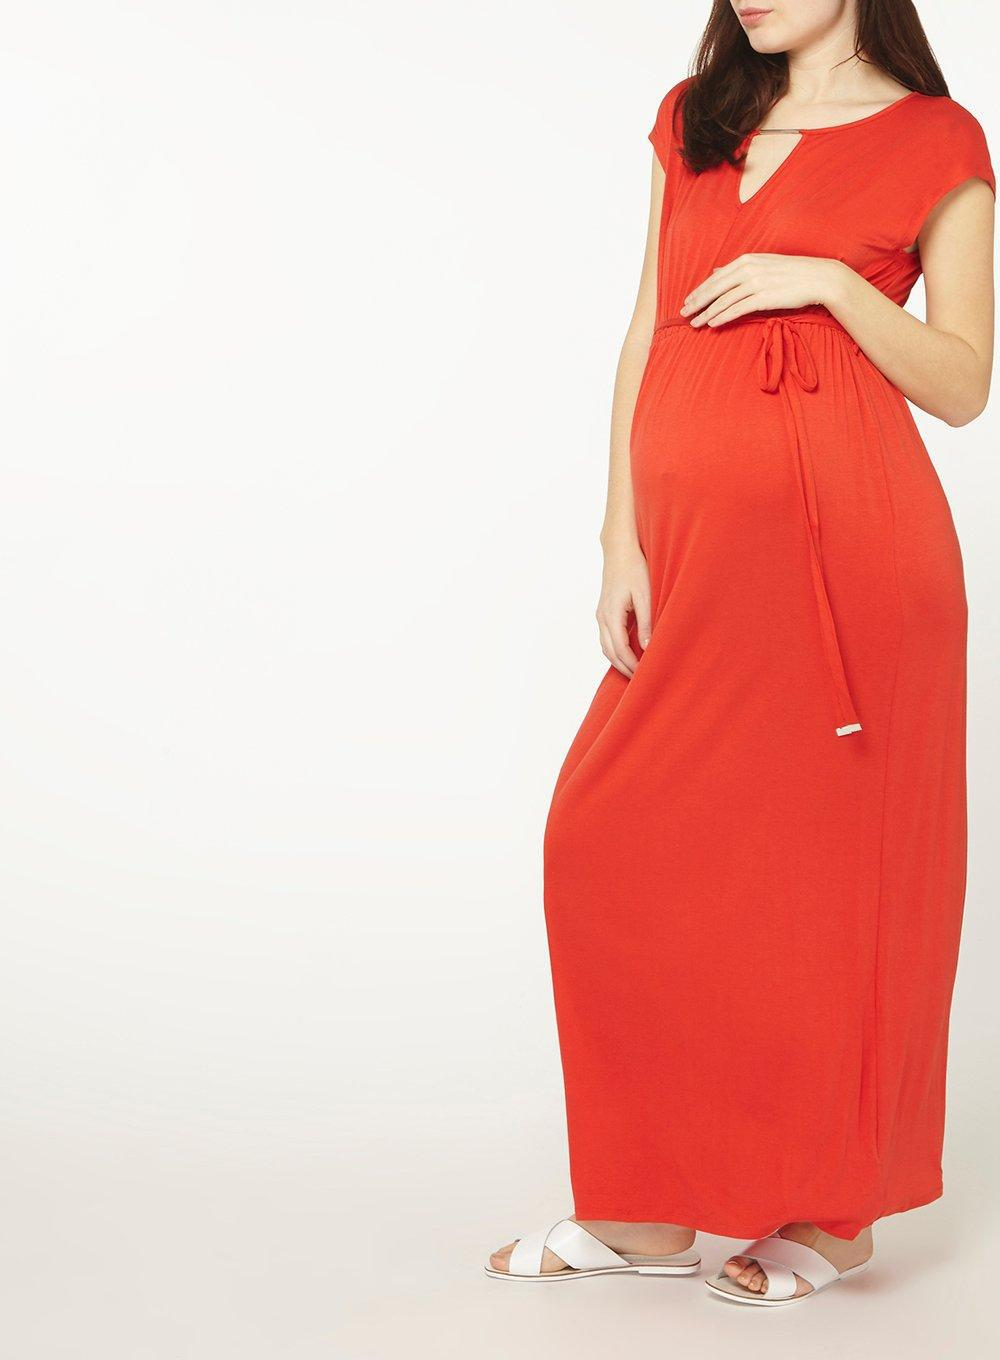 86d61f3a063 Gallery. Previously sold at  Dorothy Perkins · Women s Collared Dresses ...